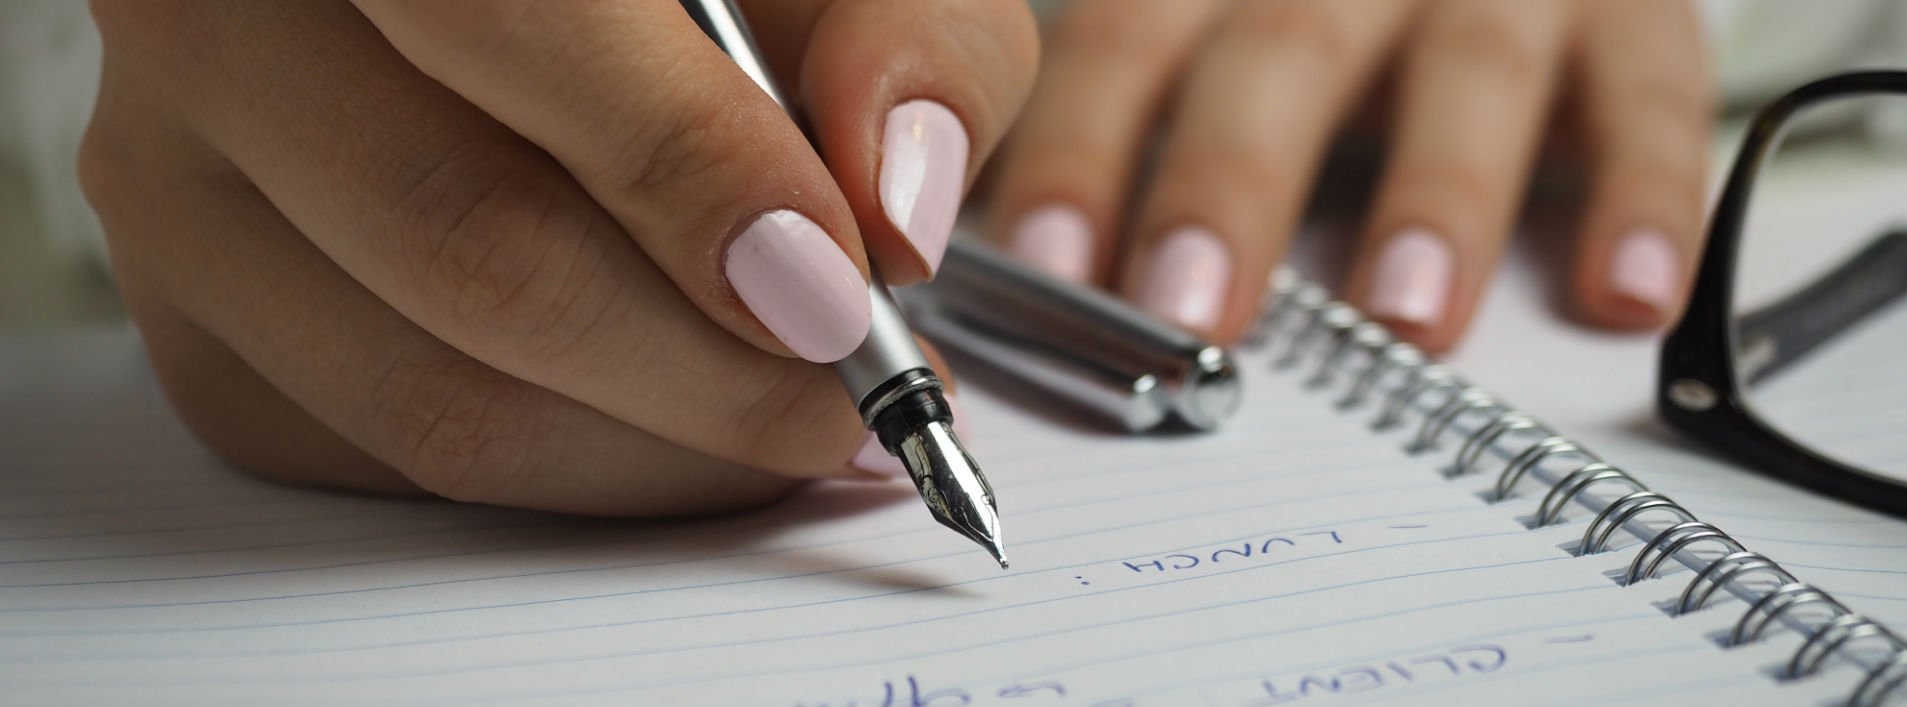 Woman with light pink nails using a fountain pen on a piece of paper and proofreading.